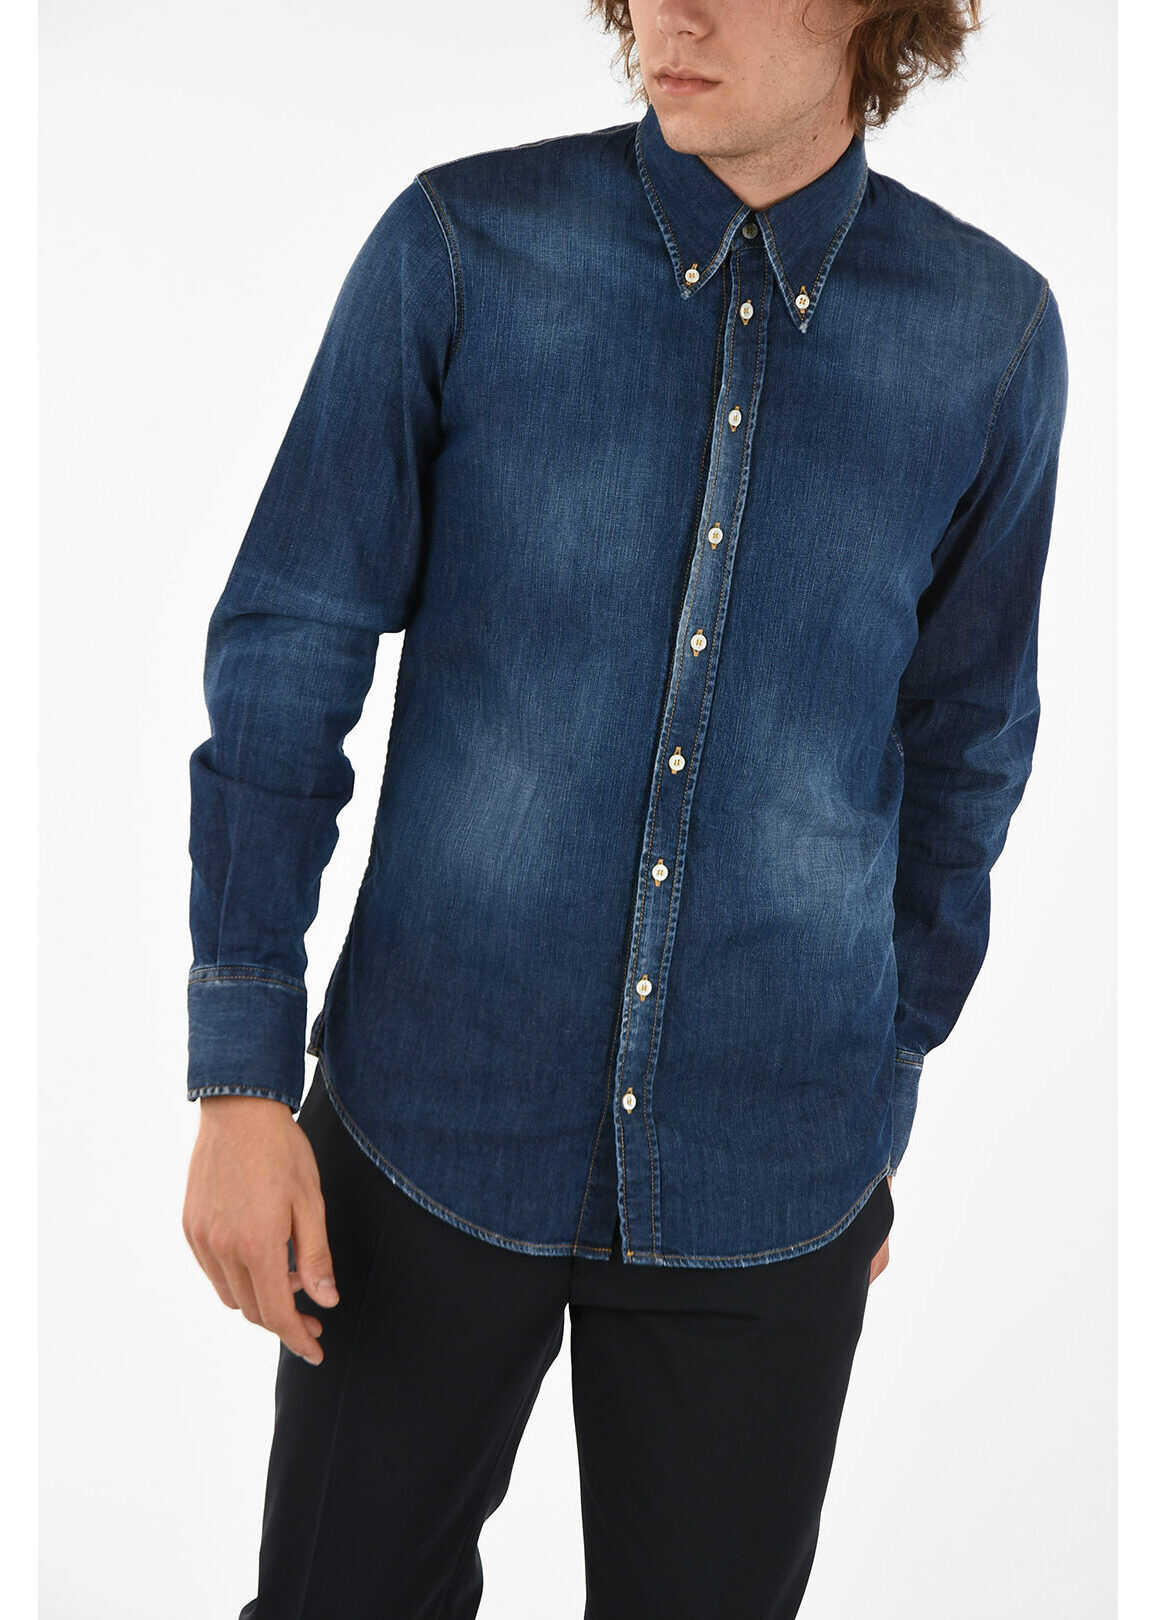 DSQUARED2 Stonewashed Button-Down Shirt BLUE imagine